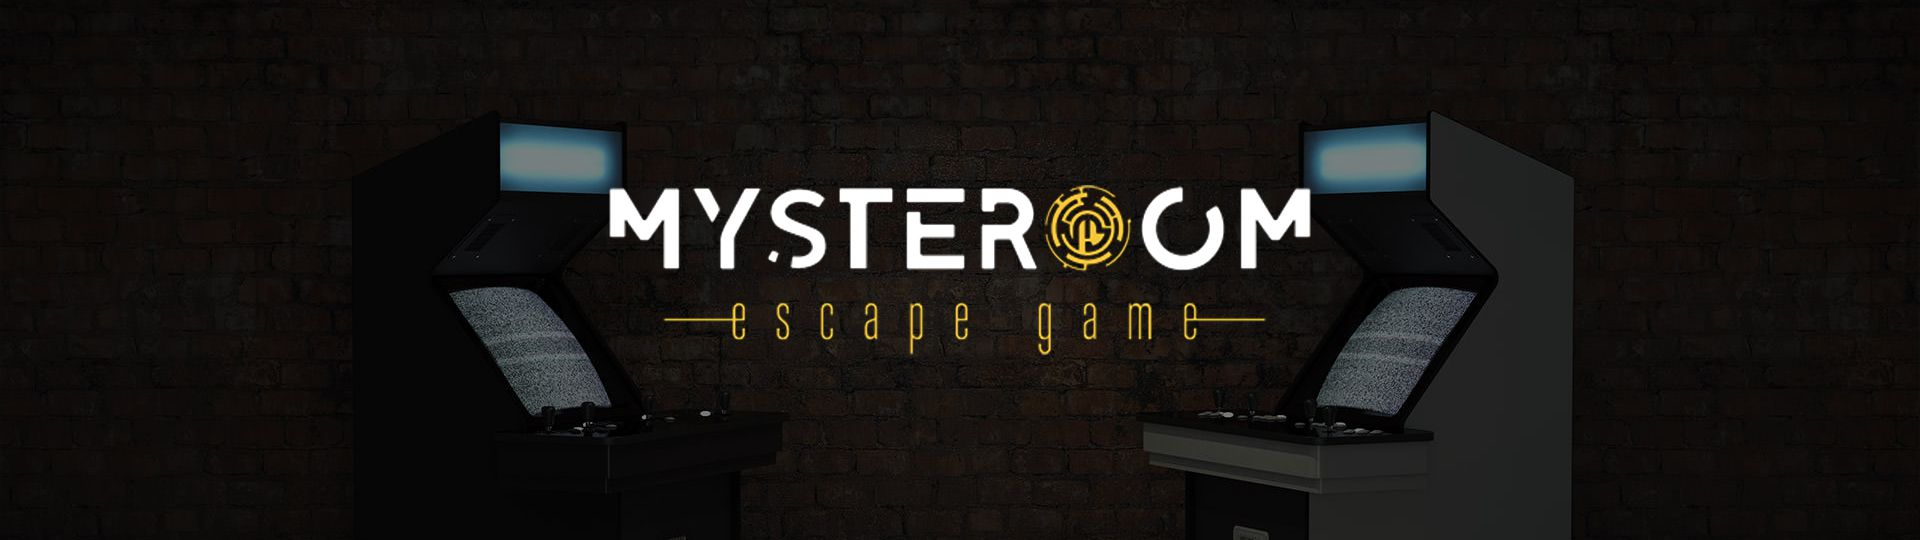 L'enseigne Mysteroom : escape games Nice.jpg